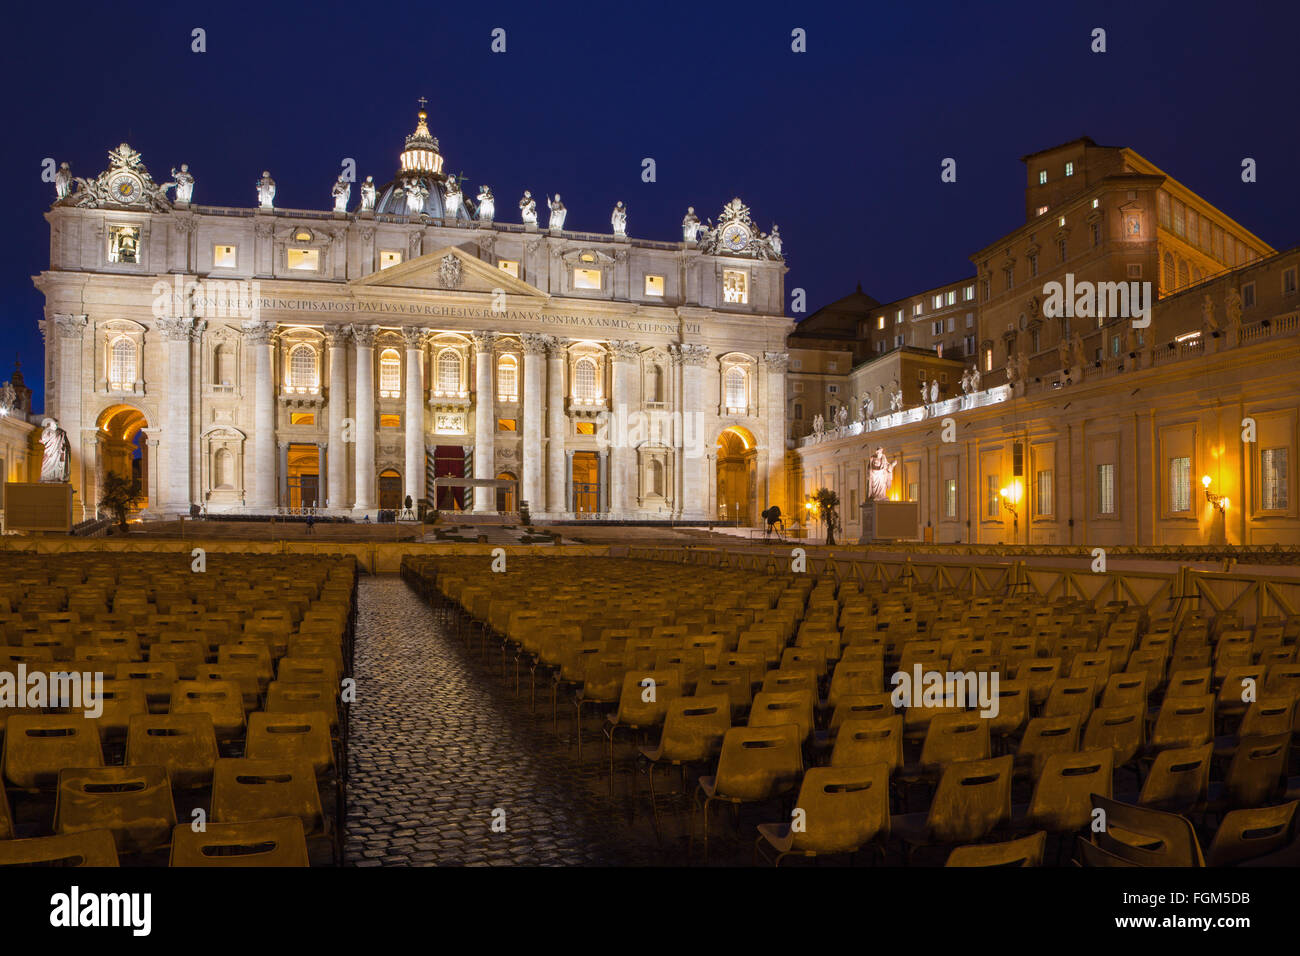 Rome - St. Peter's Basilica - 'Basilica di San Pietro' and the square at dusk before of Palm Sunday. - Stock Image